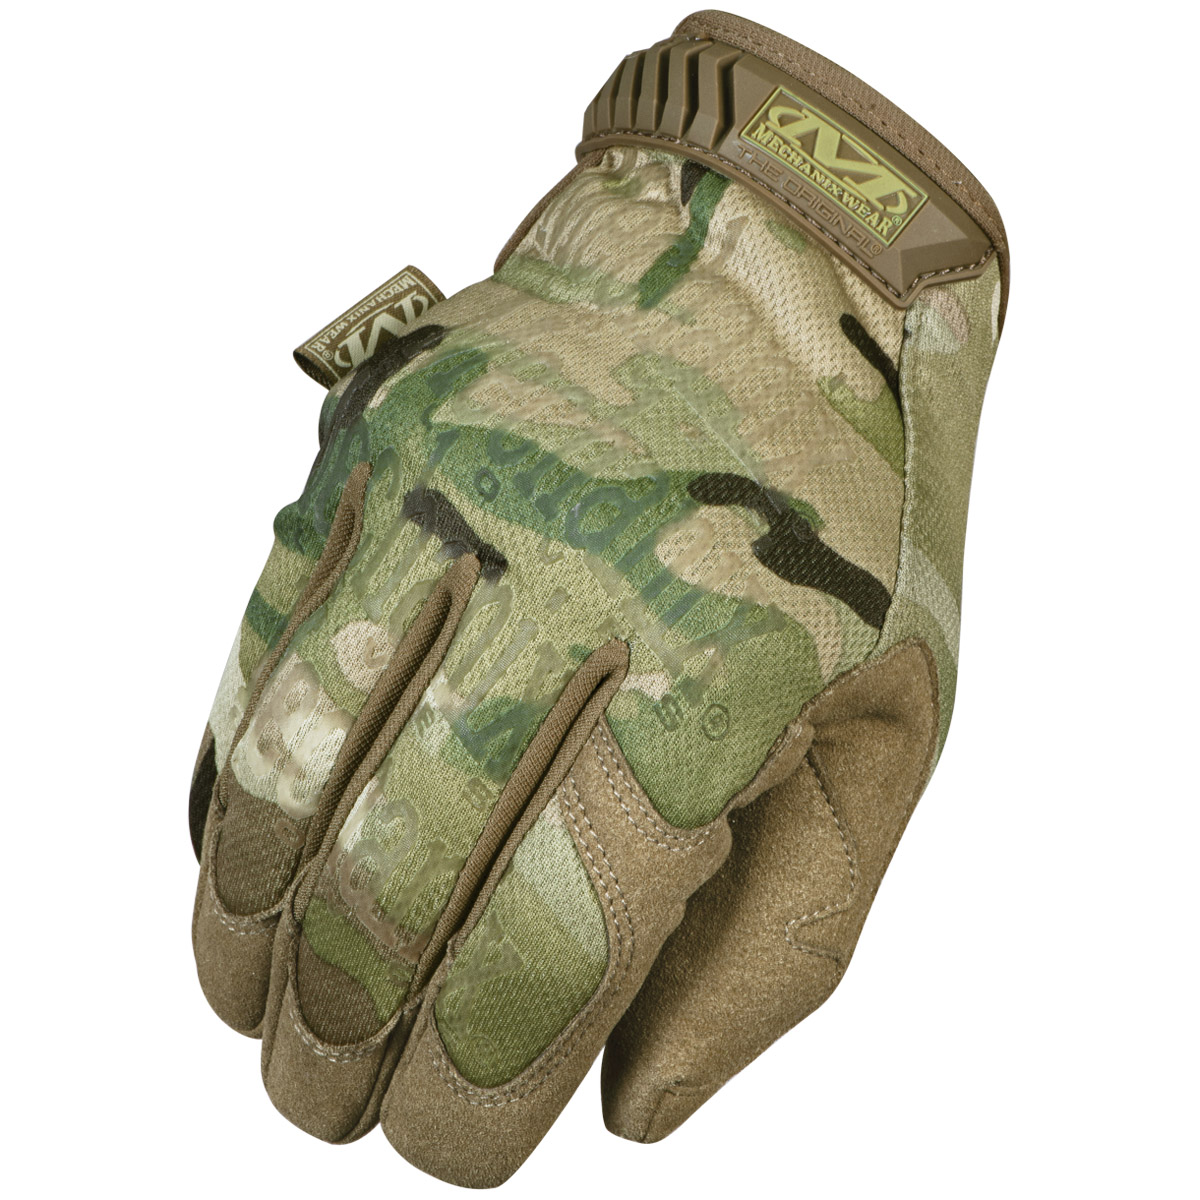 MECHANIX WEAR ORIGINAL MENS GLOVES AIRSOFT COMBAT TACTICAL HUNTING MULTICAM CAMO